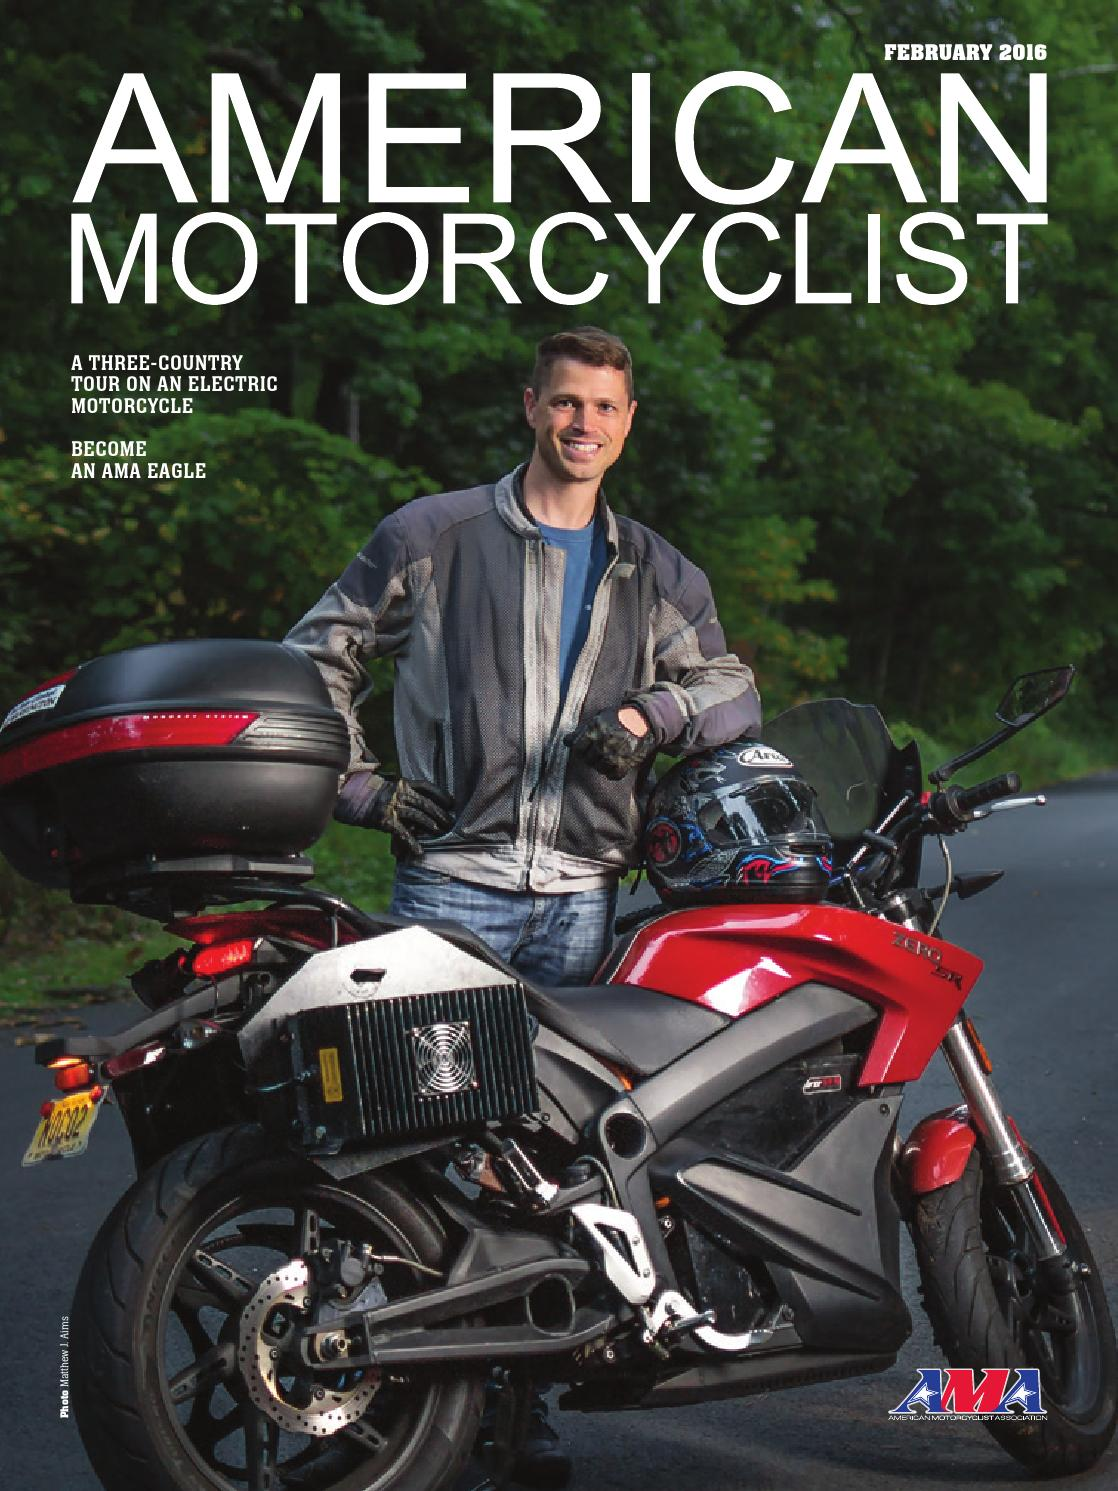 lovely american motorcyclist #2: American Motorcyclist February 2016 Street (preview version) by American  Motorcyclist Association - issuu